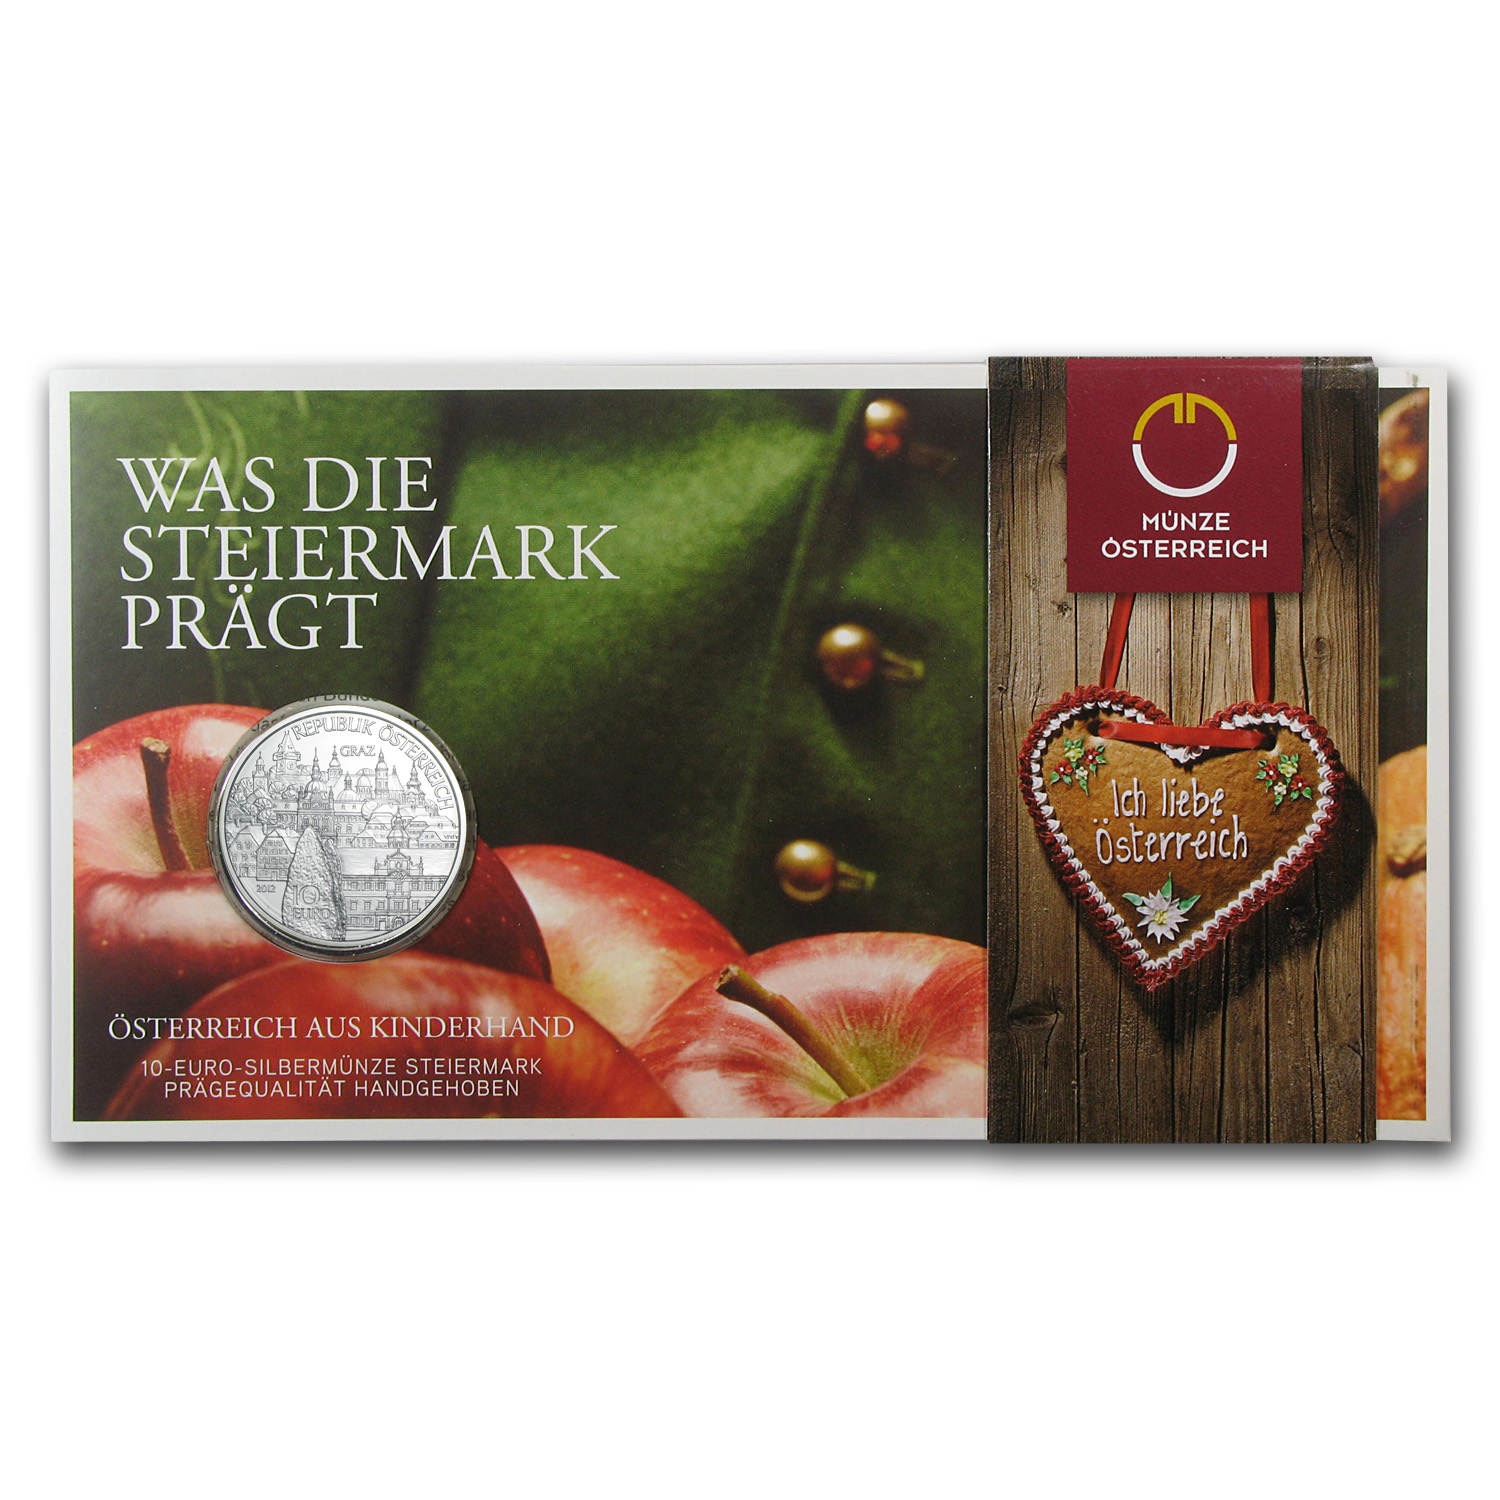 2012 Steiermark-Styria 10 Euro Silver Coin In Blister ASW 0.4759